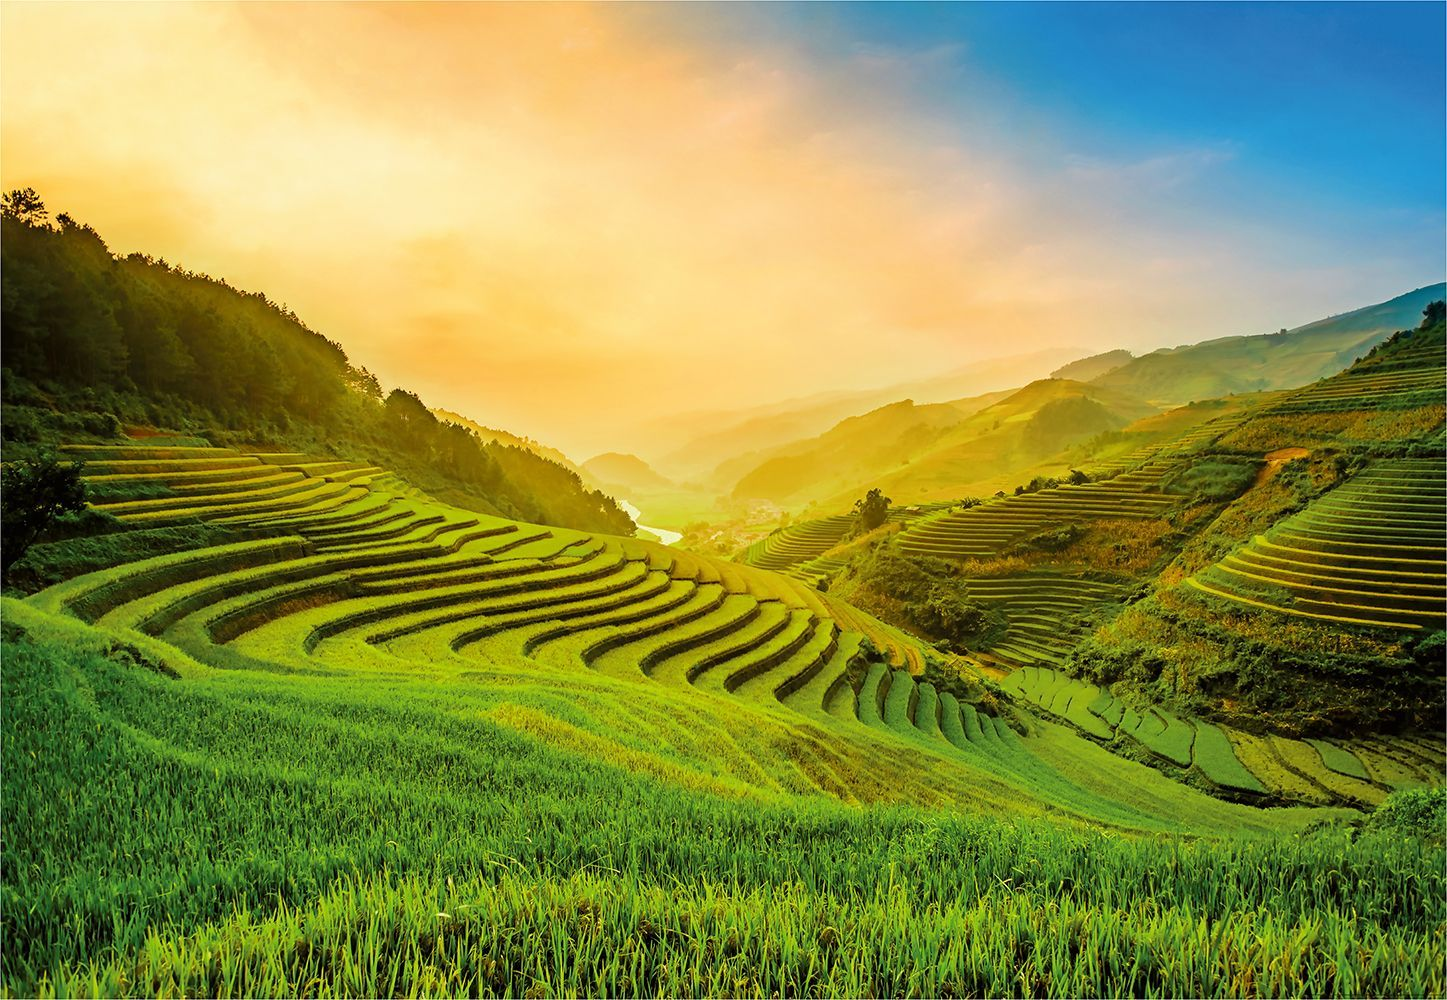 Rice Field Wallpapers   Top Rice Field Backgrounds 1447x1000